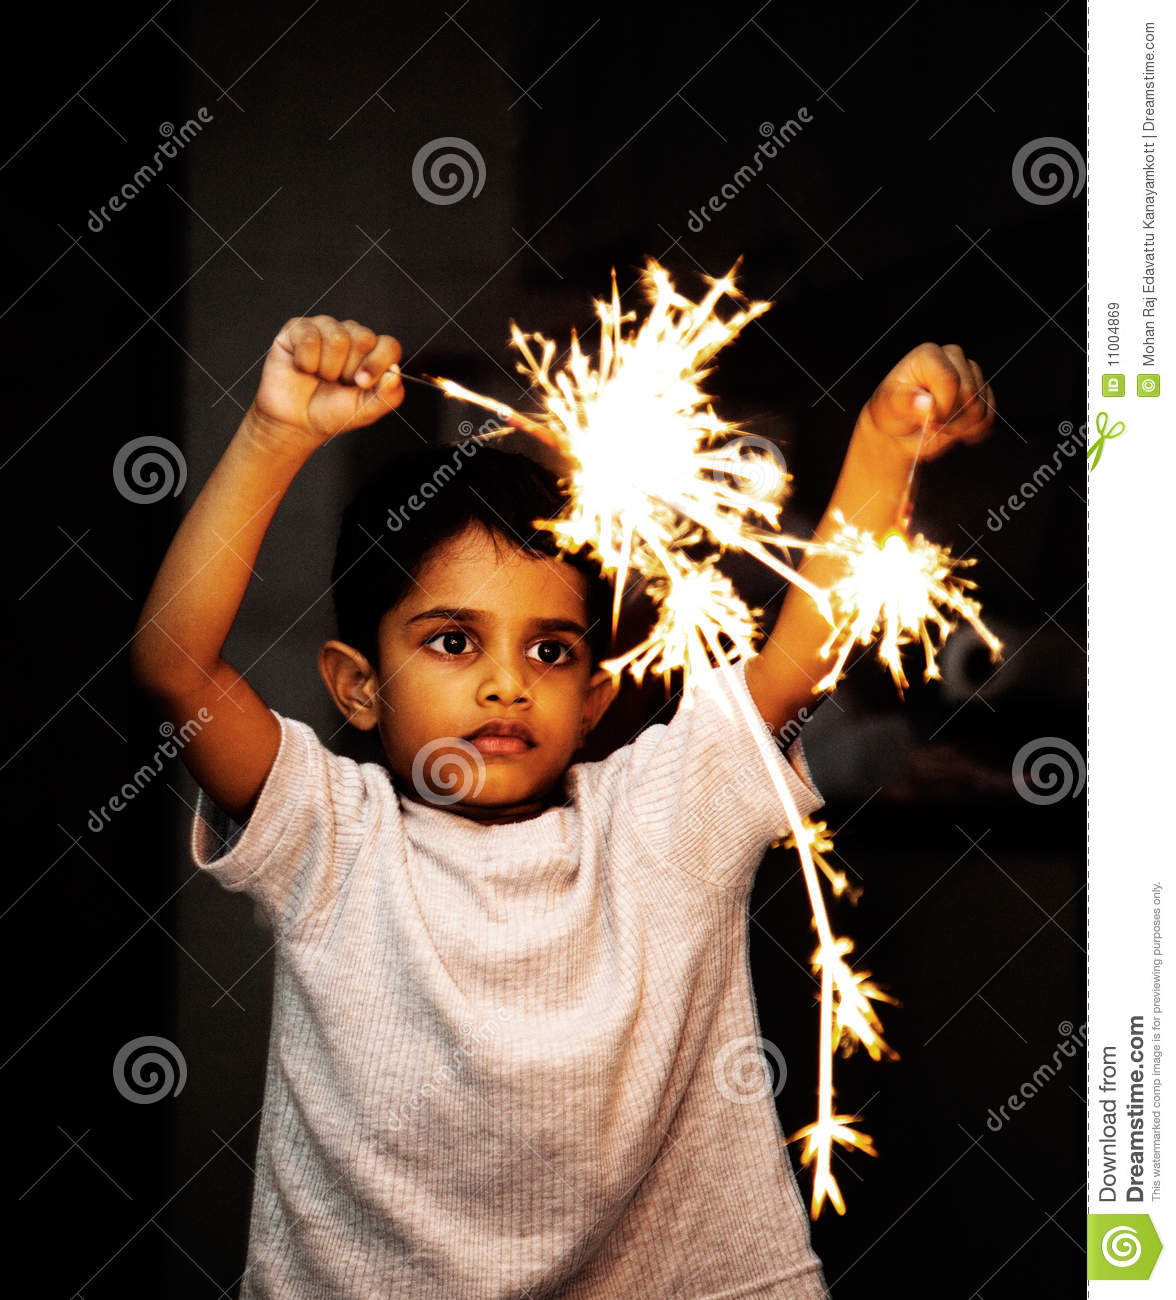 Kid playing with fire crackers on Diwali Festival